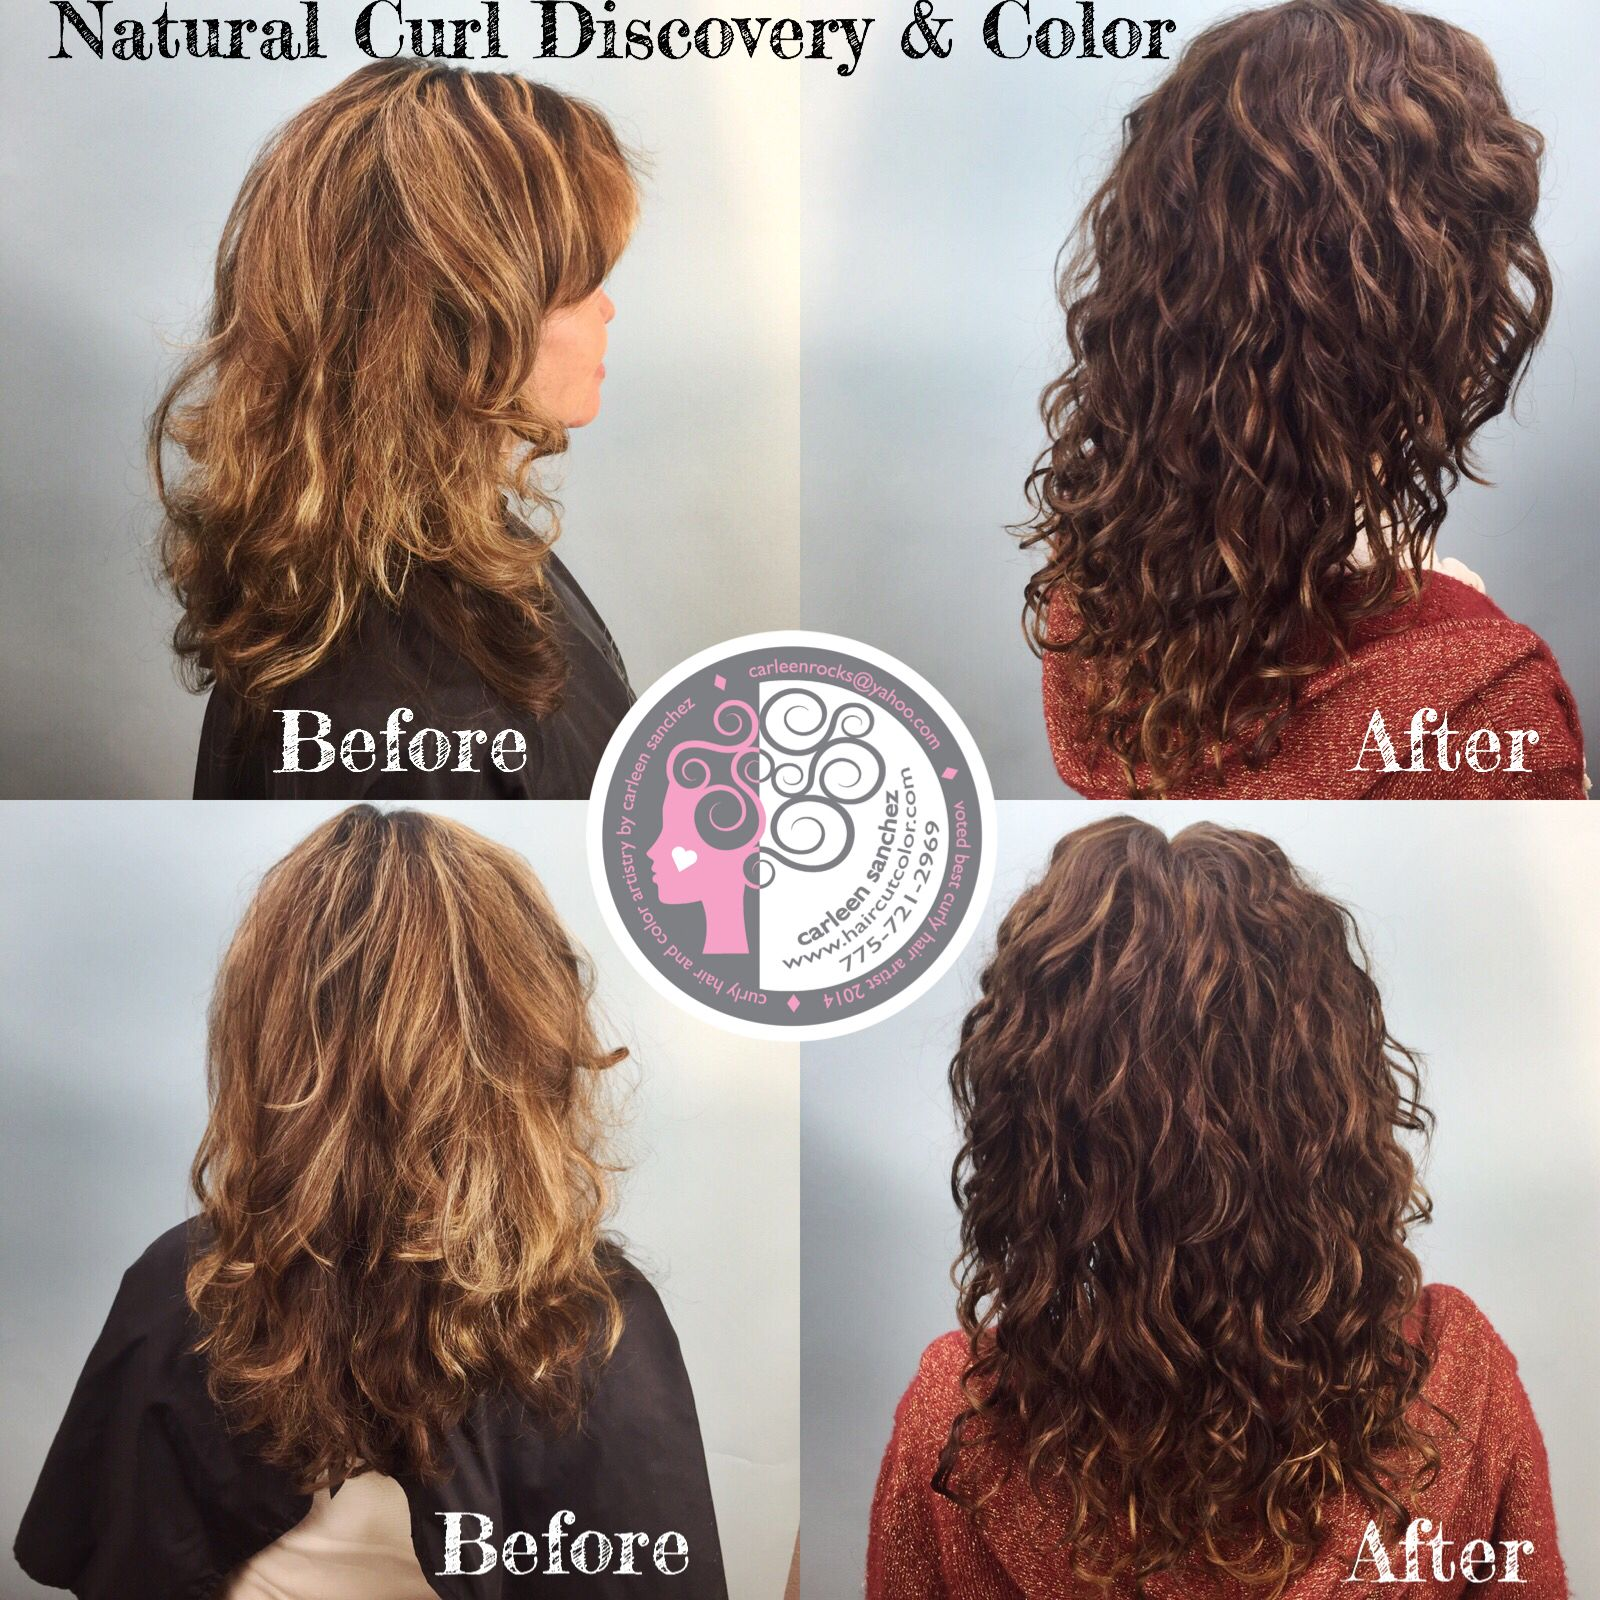 Naturally Curly transformation by Carleen Sanchez Curly Hair and